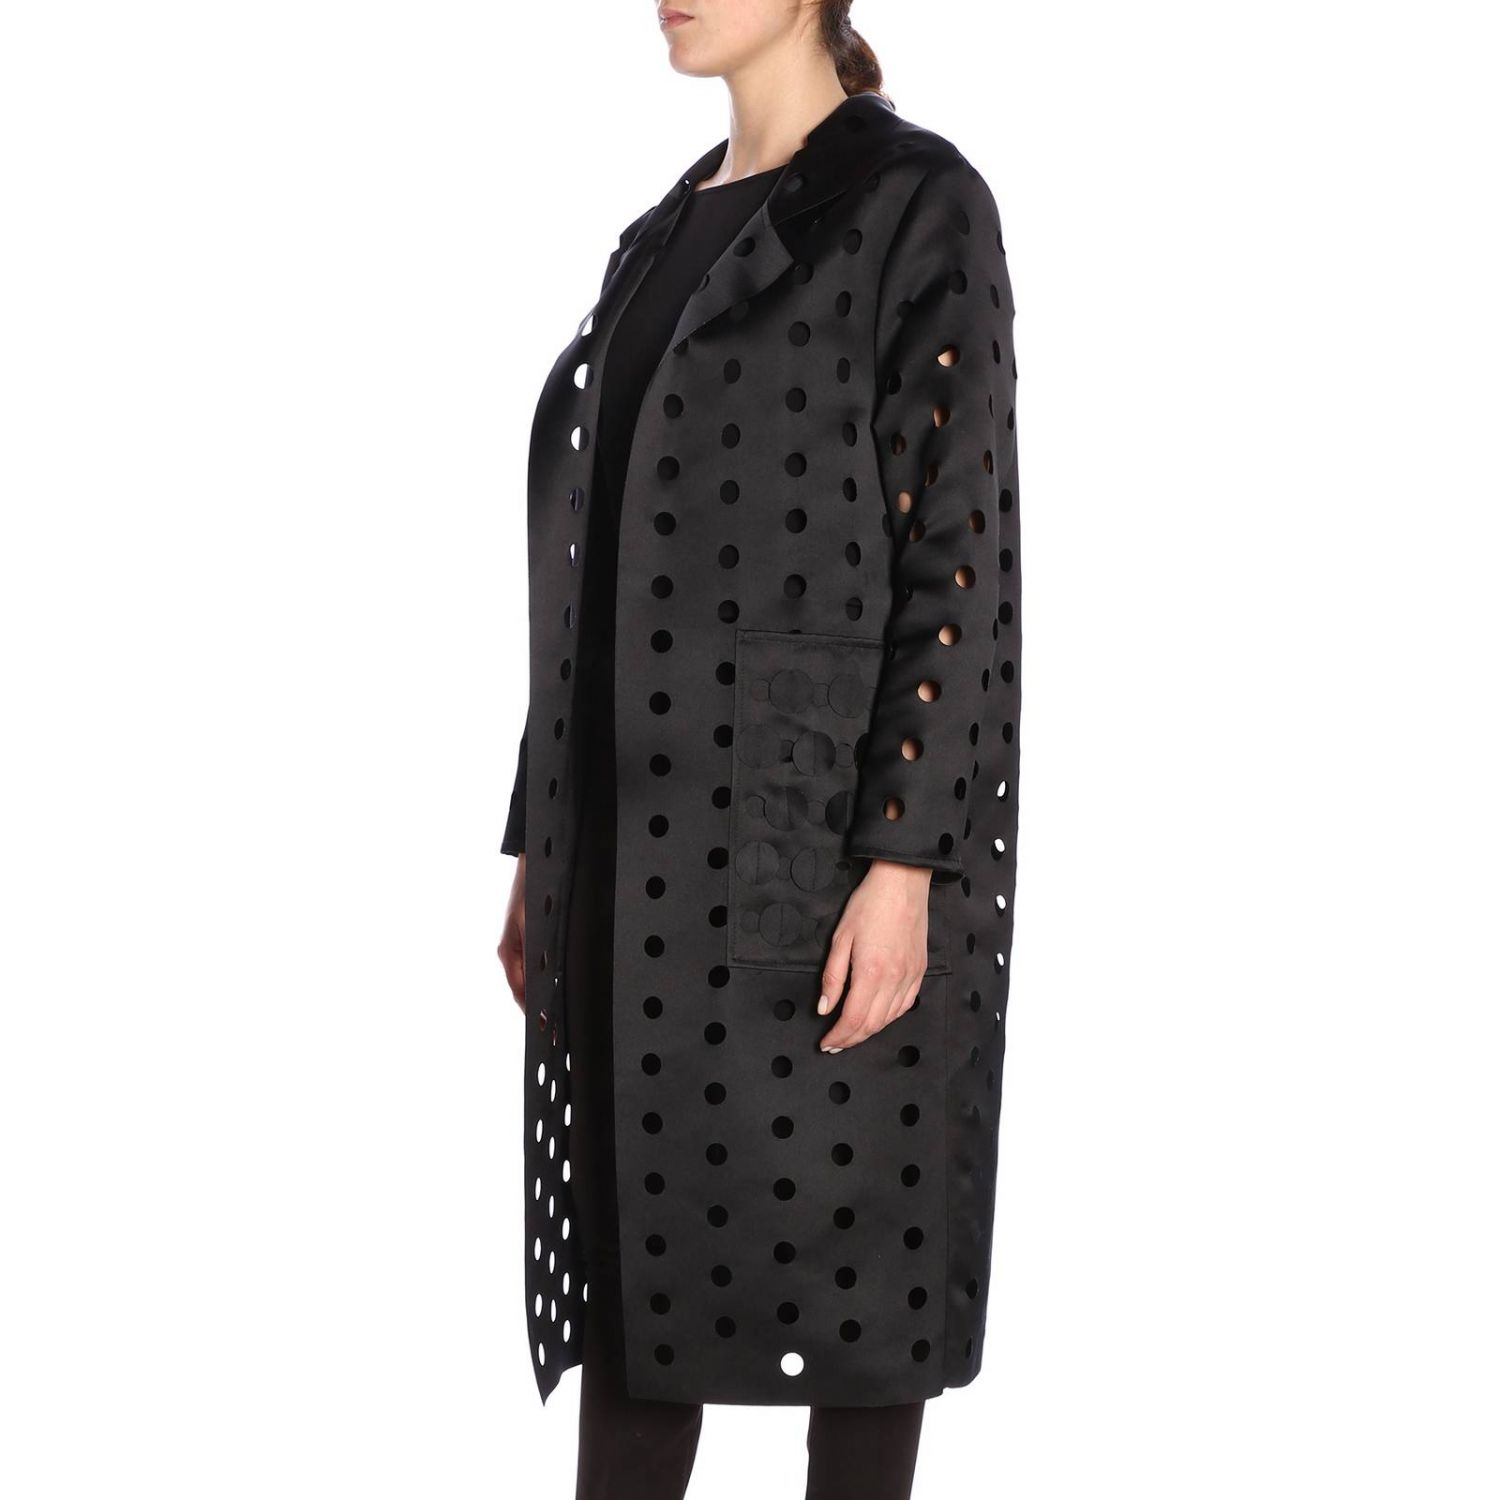 Cappotto donna Caban Romantic nero 2